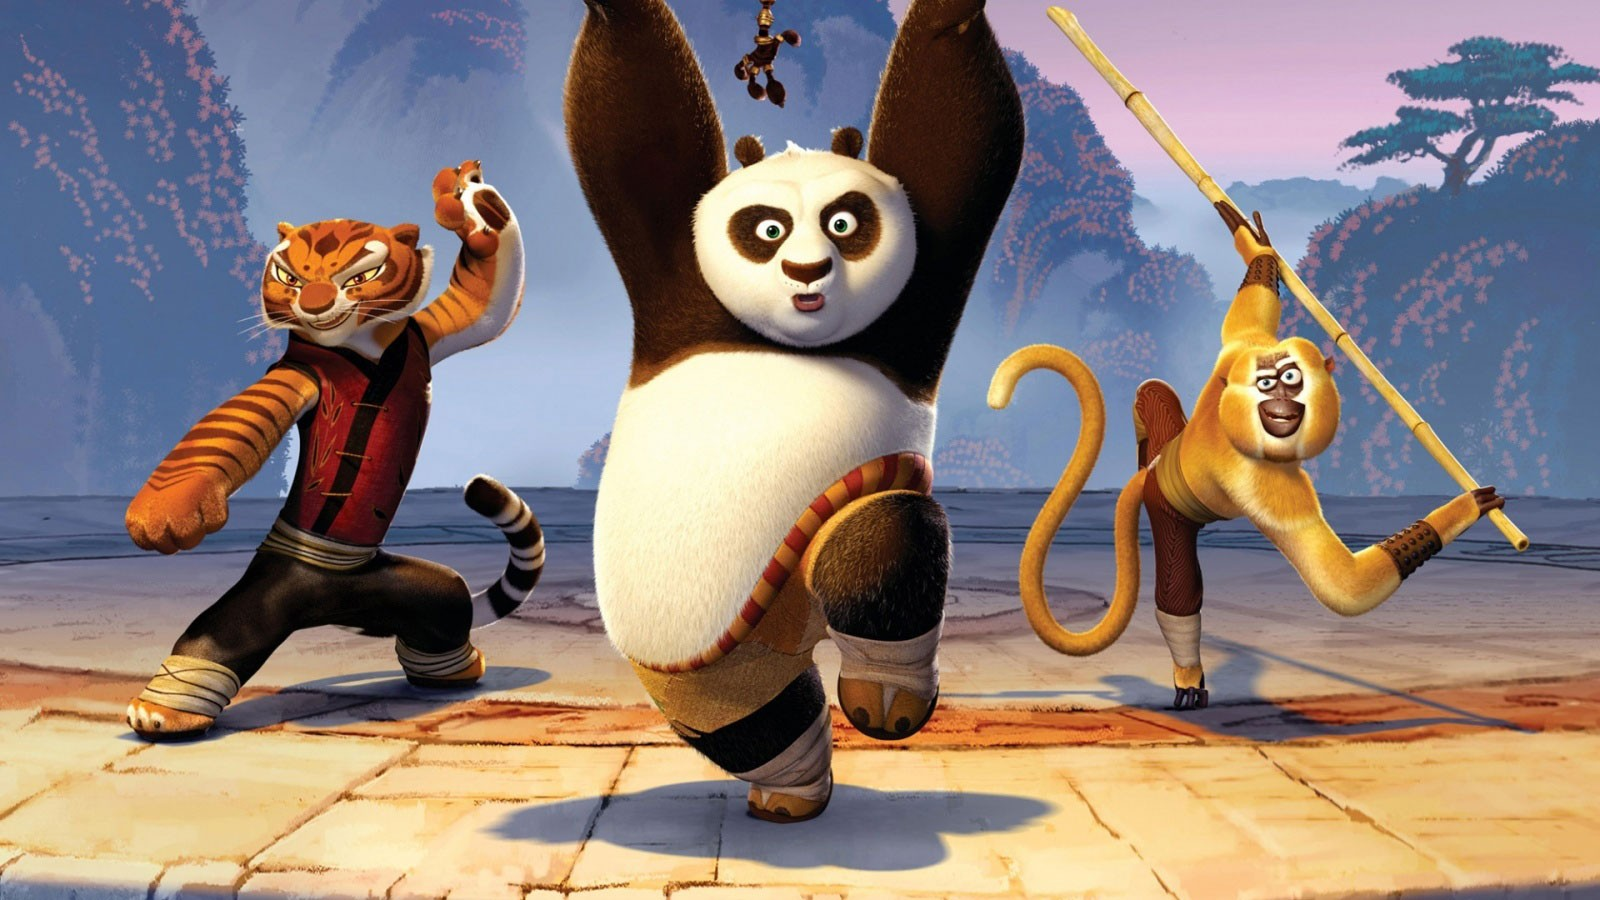 Kung fu panda iphone wallpaper - Available Resolutions Pc Mac Android Ios Custom